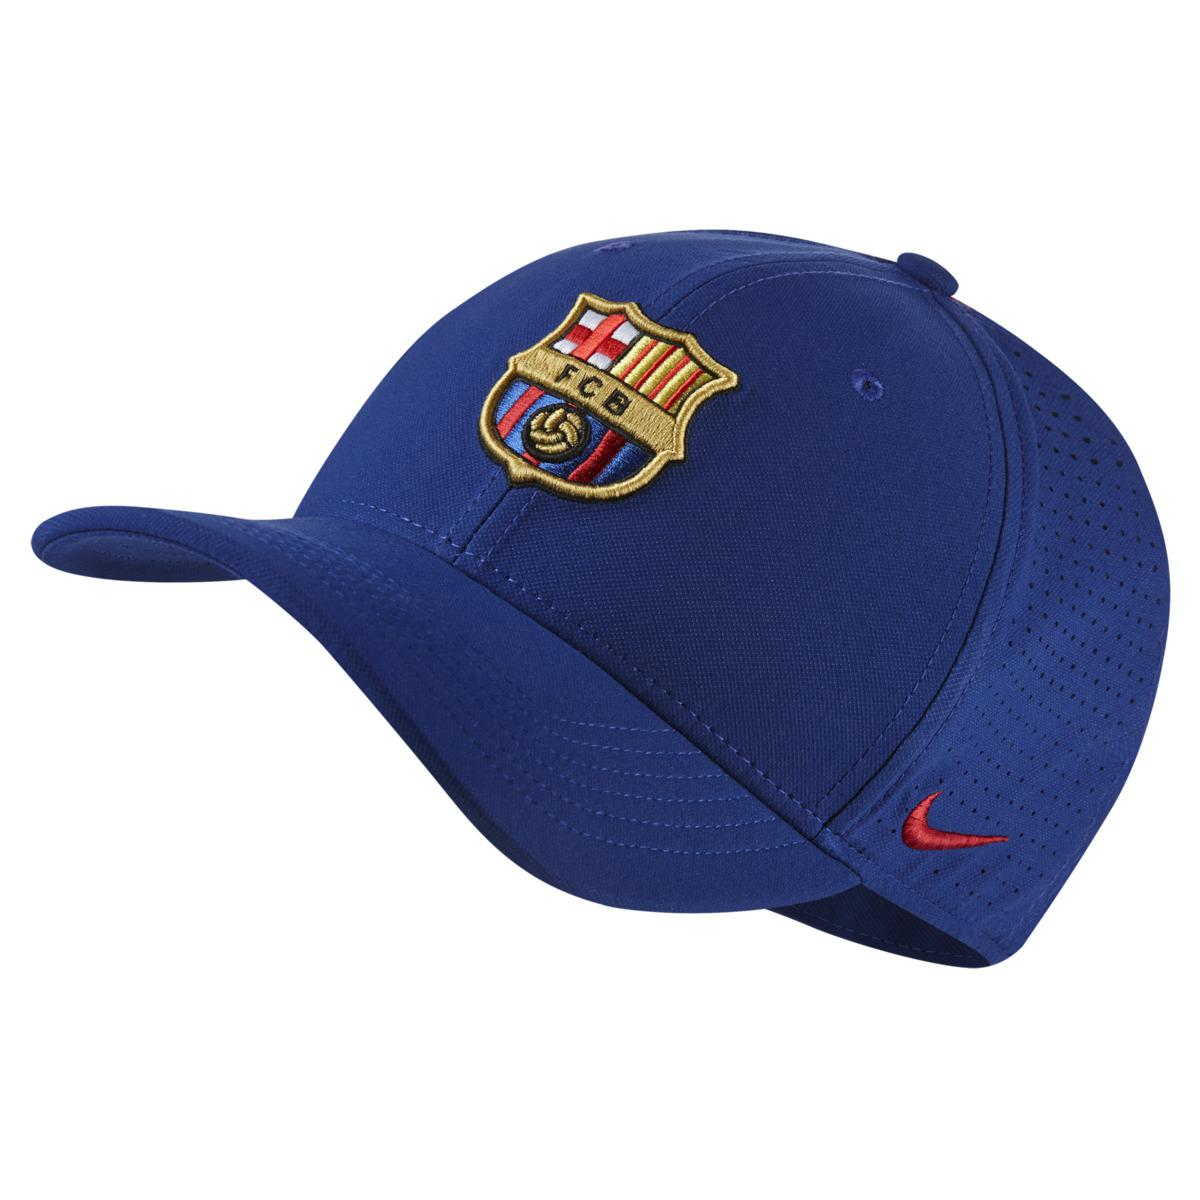 low priced 8178c 2279d Lyst - Nike Fc Barcelona Aerobill Classic 99 Cap in Blue for Men